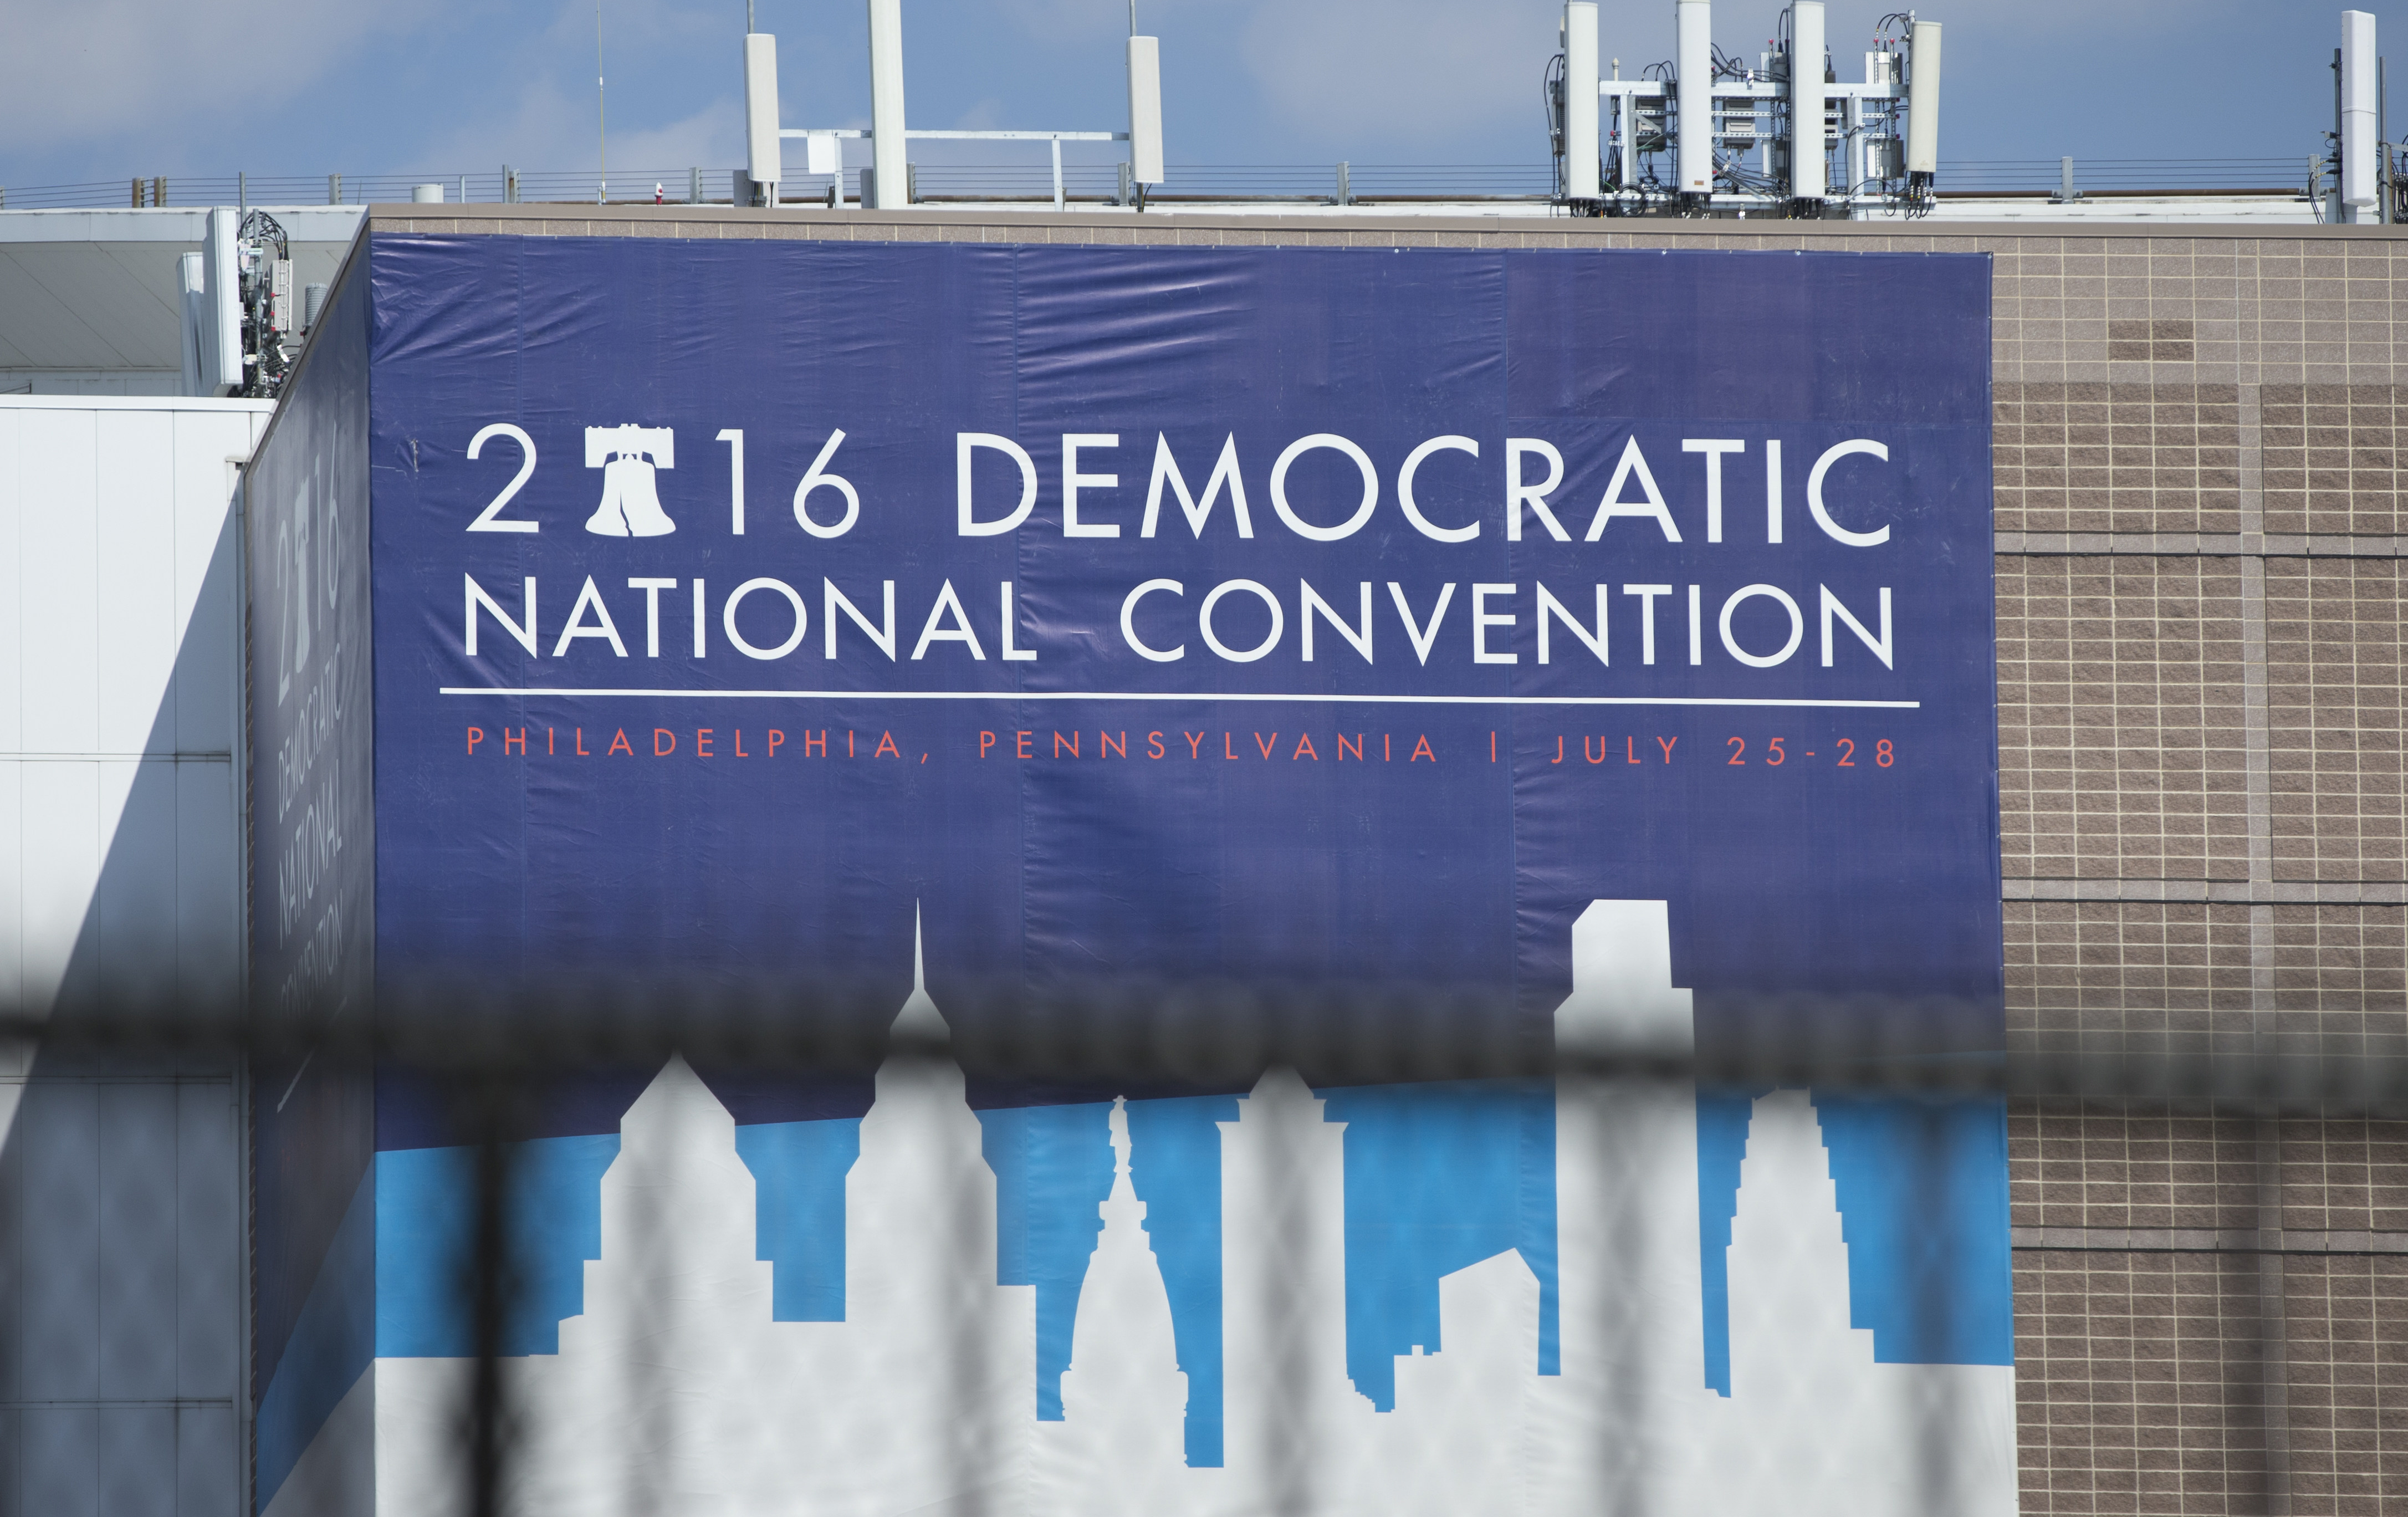 The Democratic National Convention Banner